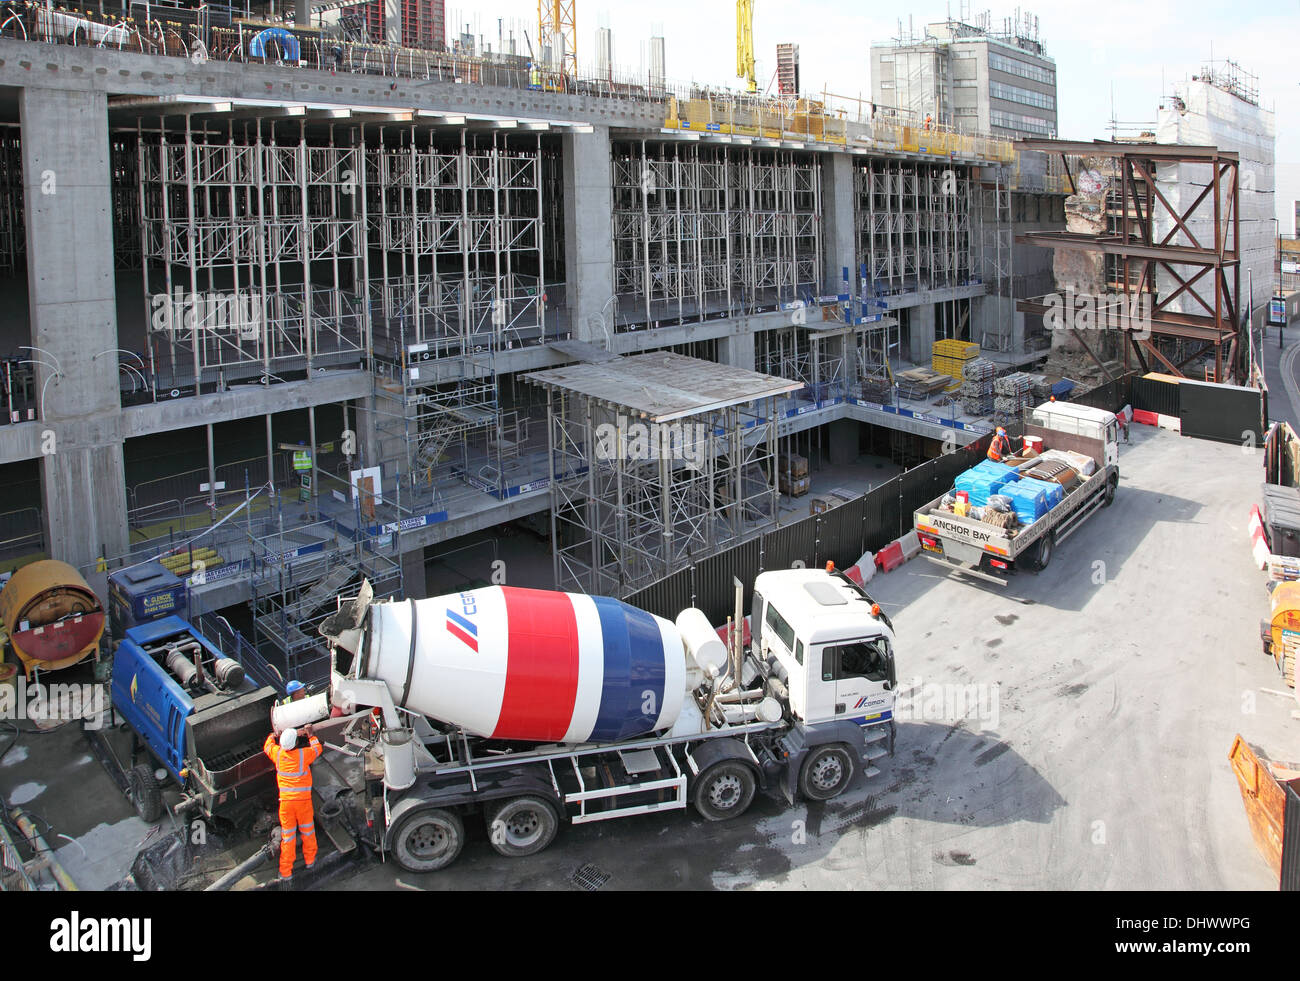 A cement lorry unloads during the construction of a new retail development. Large shoring and formwork is in the background. - Stock Image